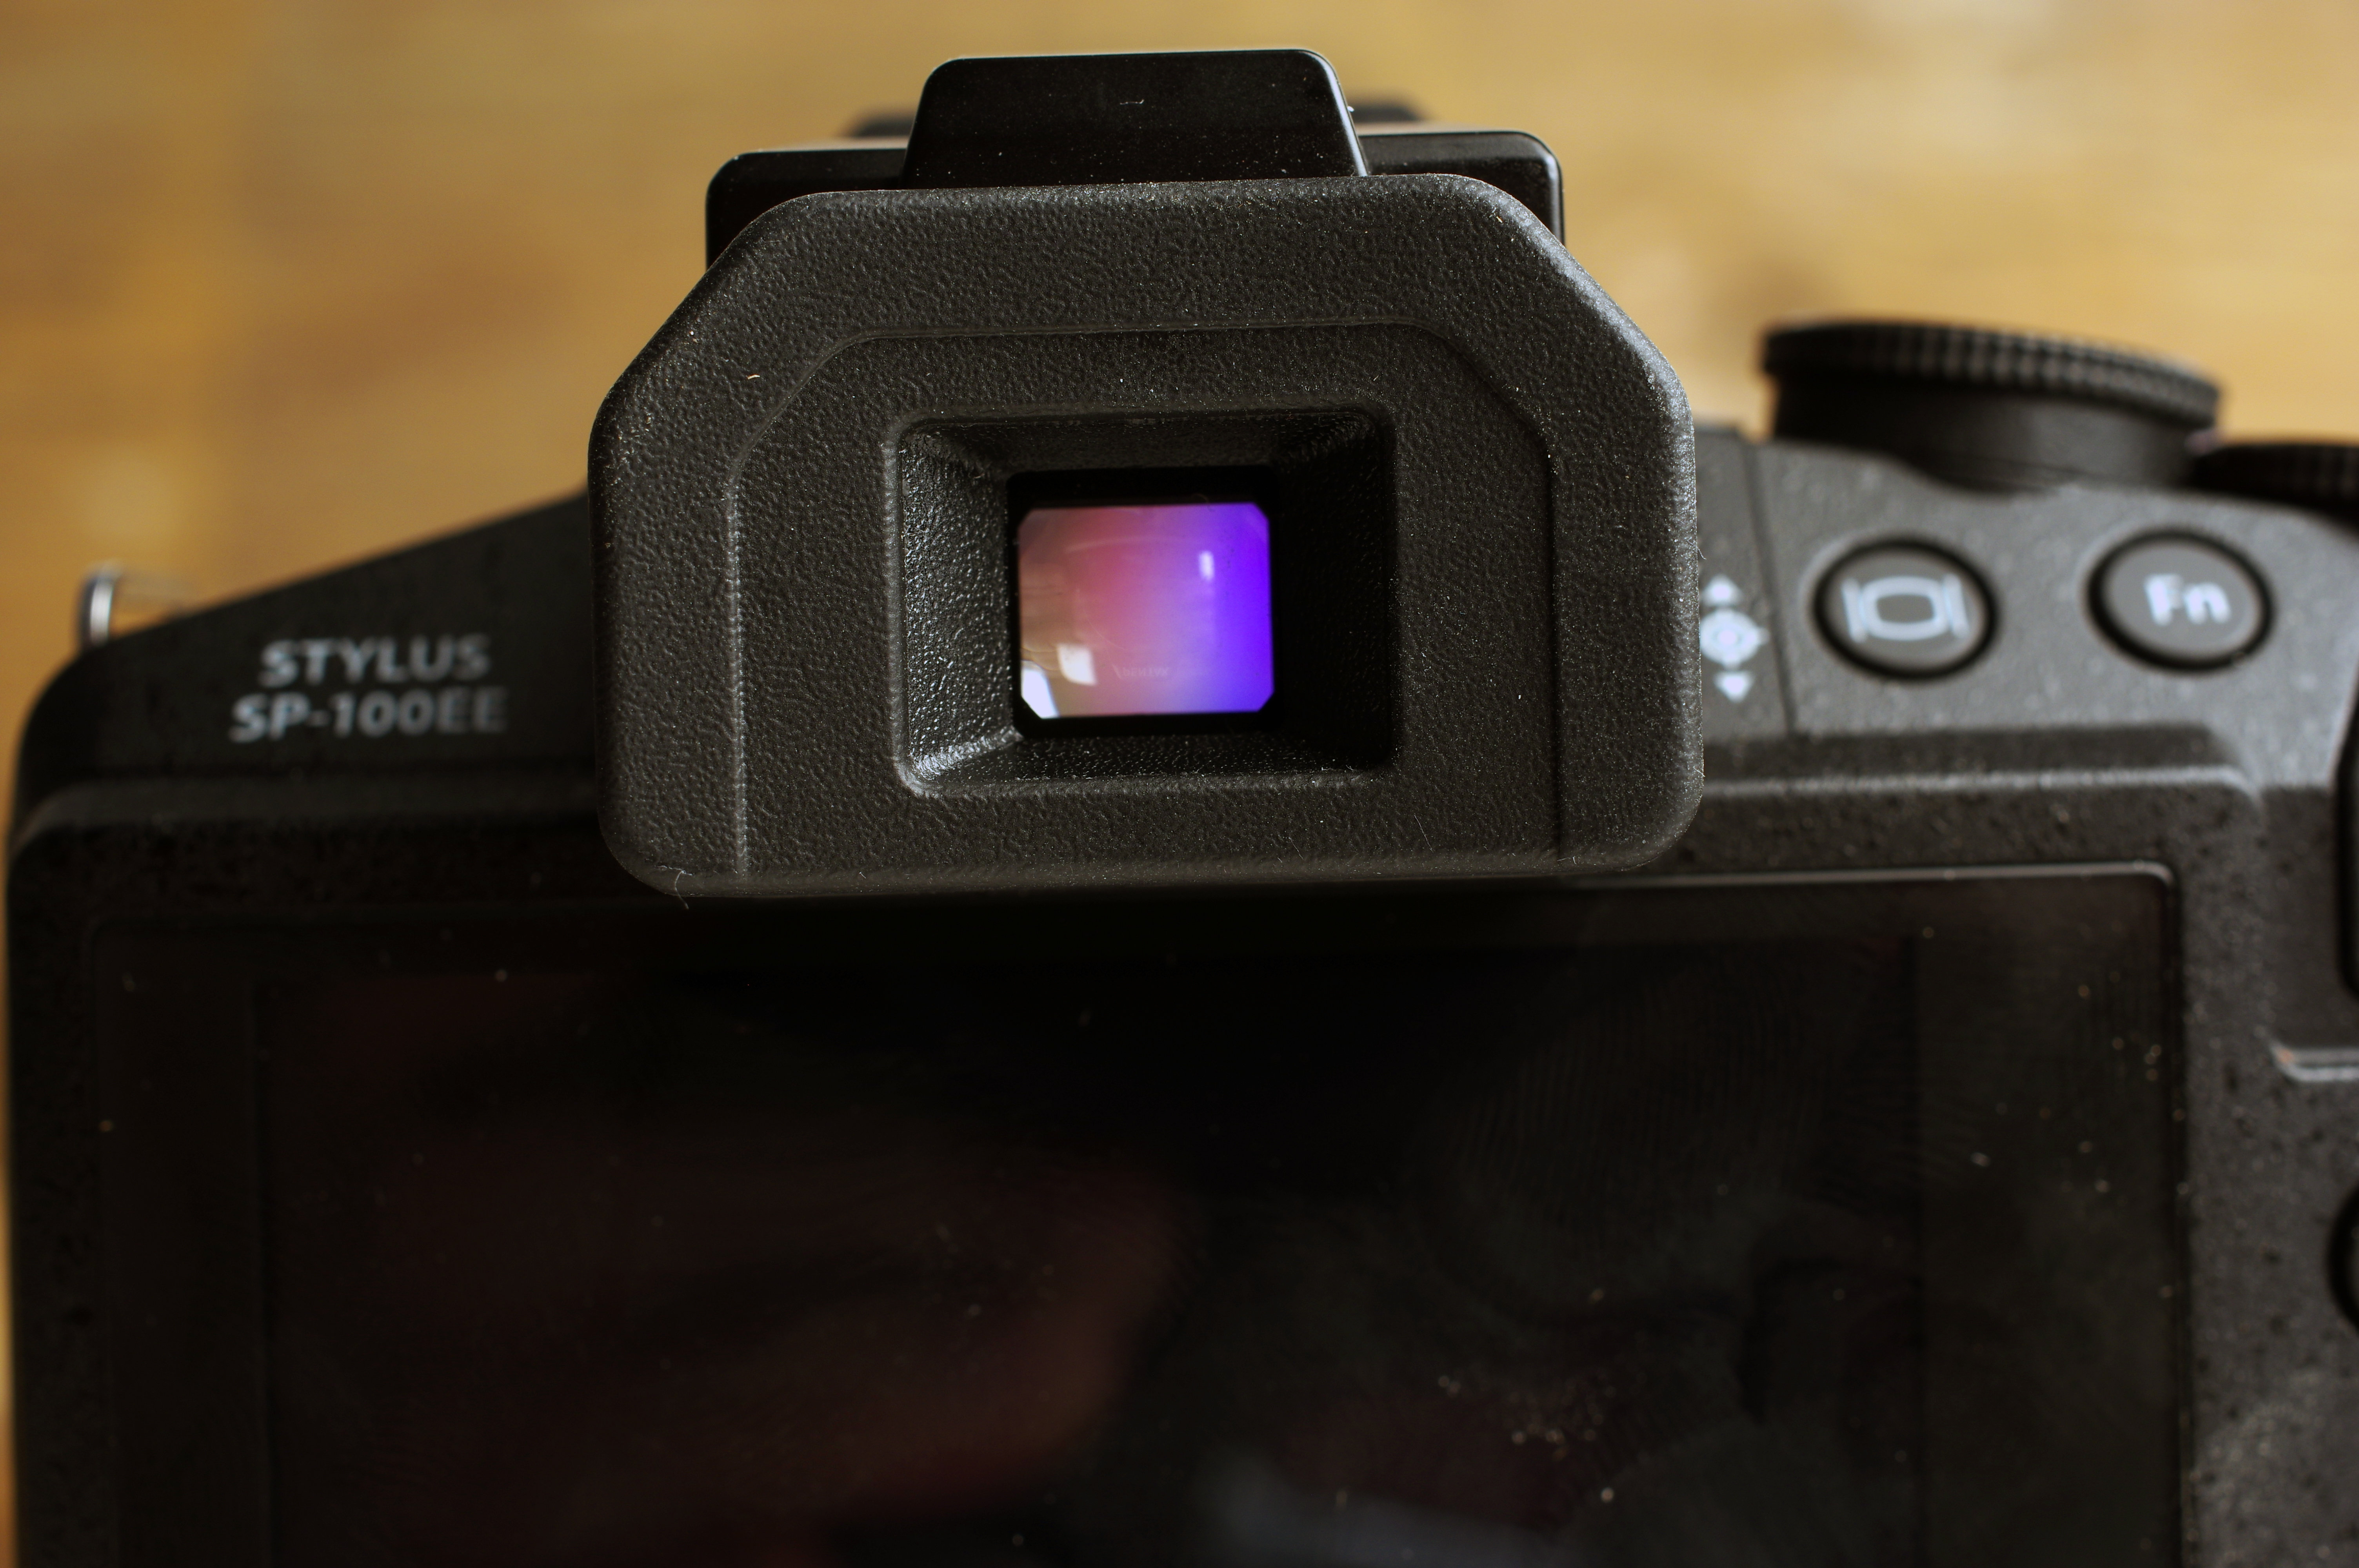 The EVF on the SP-100EE is nothing spectacular.